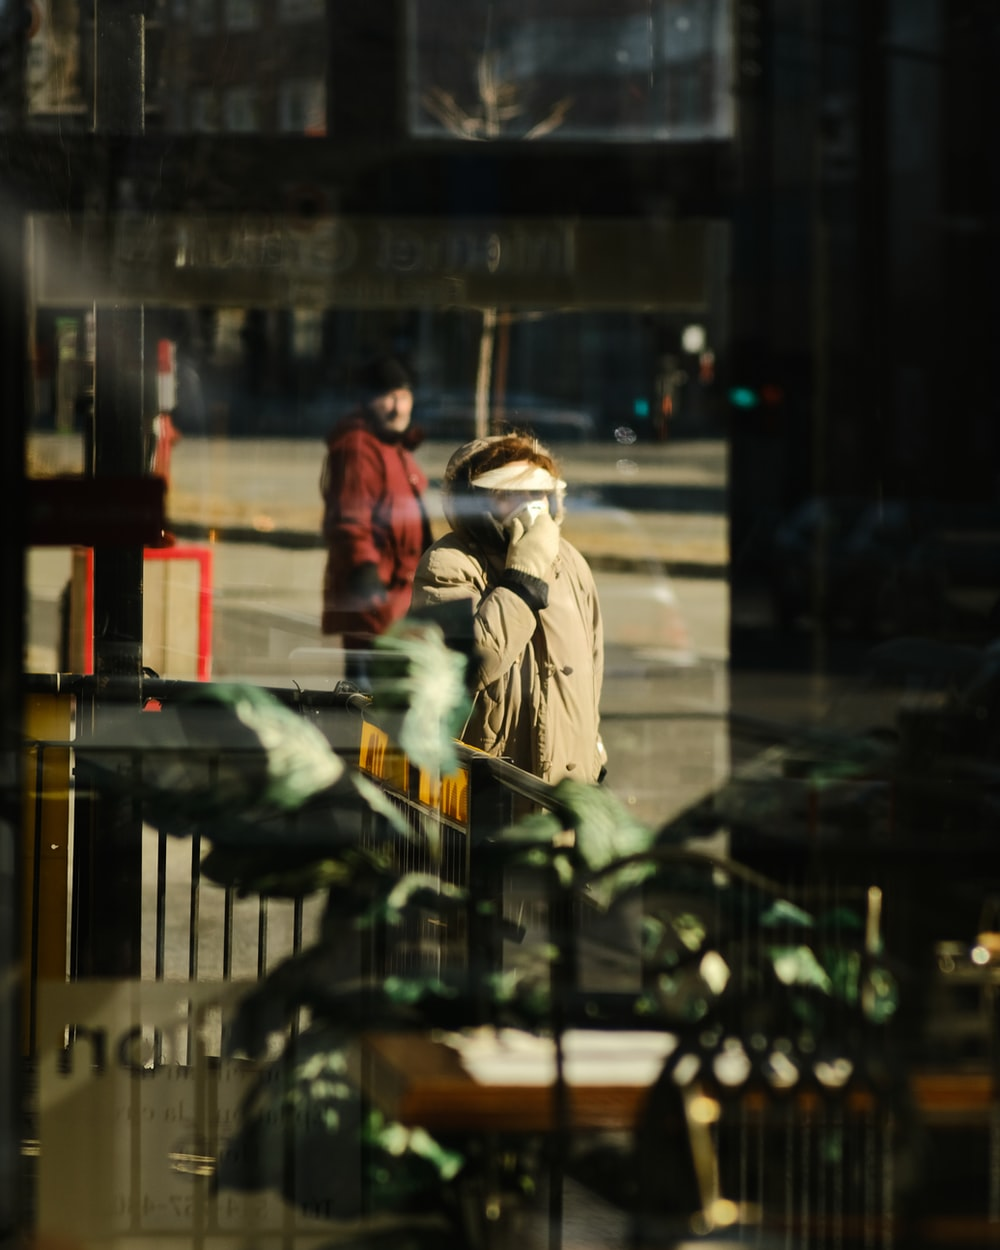 woman in brown coat standing in front of glass window